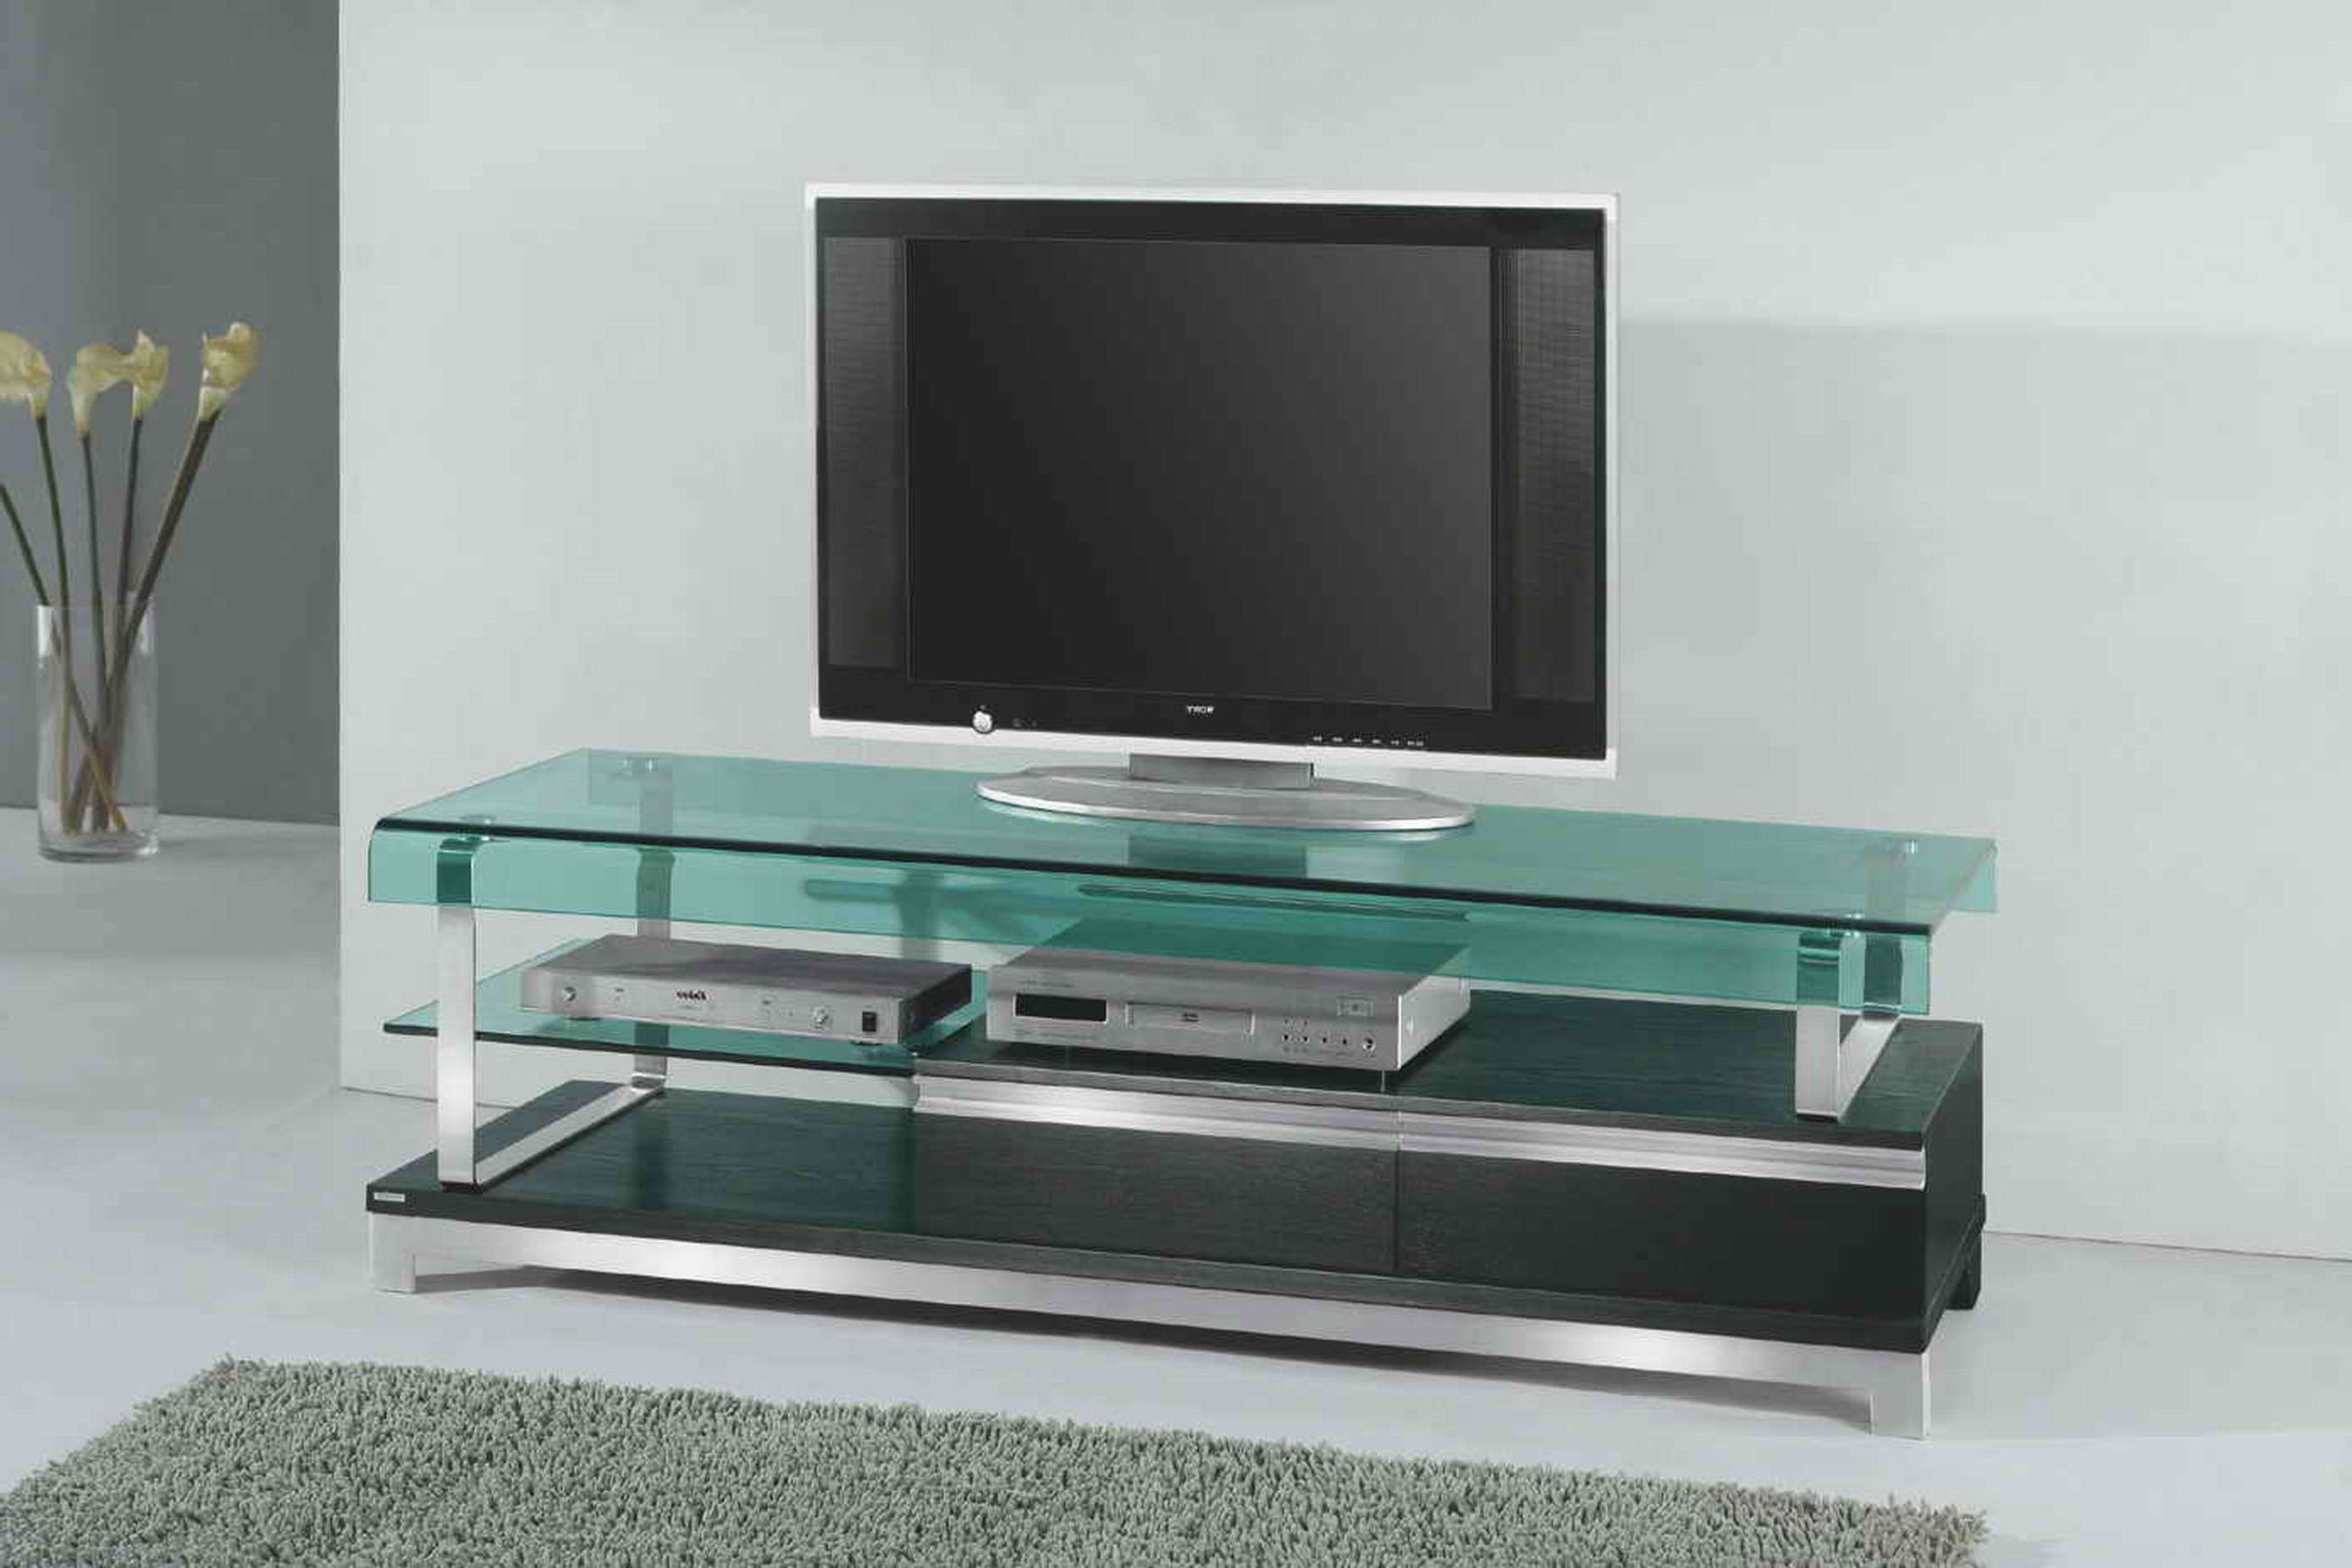 Interior Furniture Elegant Spacious Living Room With Minimalist Intended For Wood Tv Stands With Glass Top (View 5 of 15)